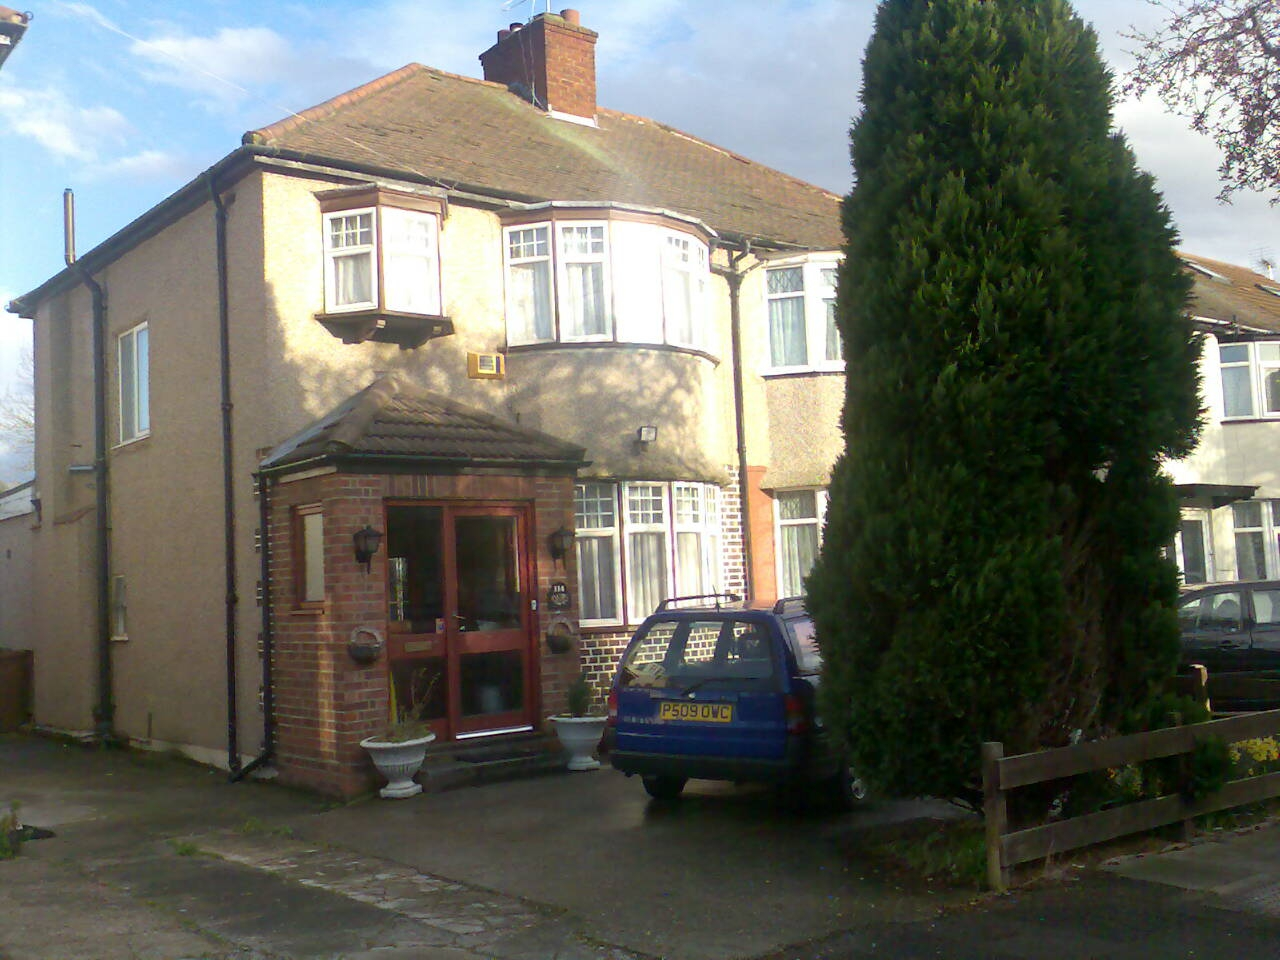 Tony McNulty, MP for Harrow East, breached house rules with expenses claimed on this house in Kenton.